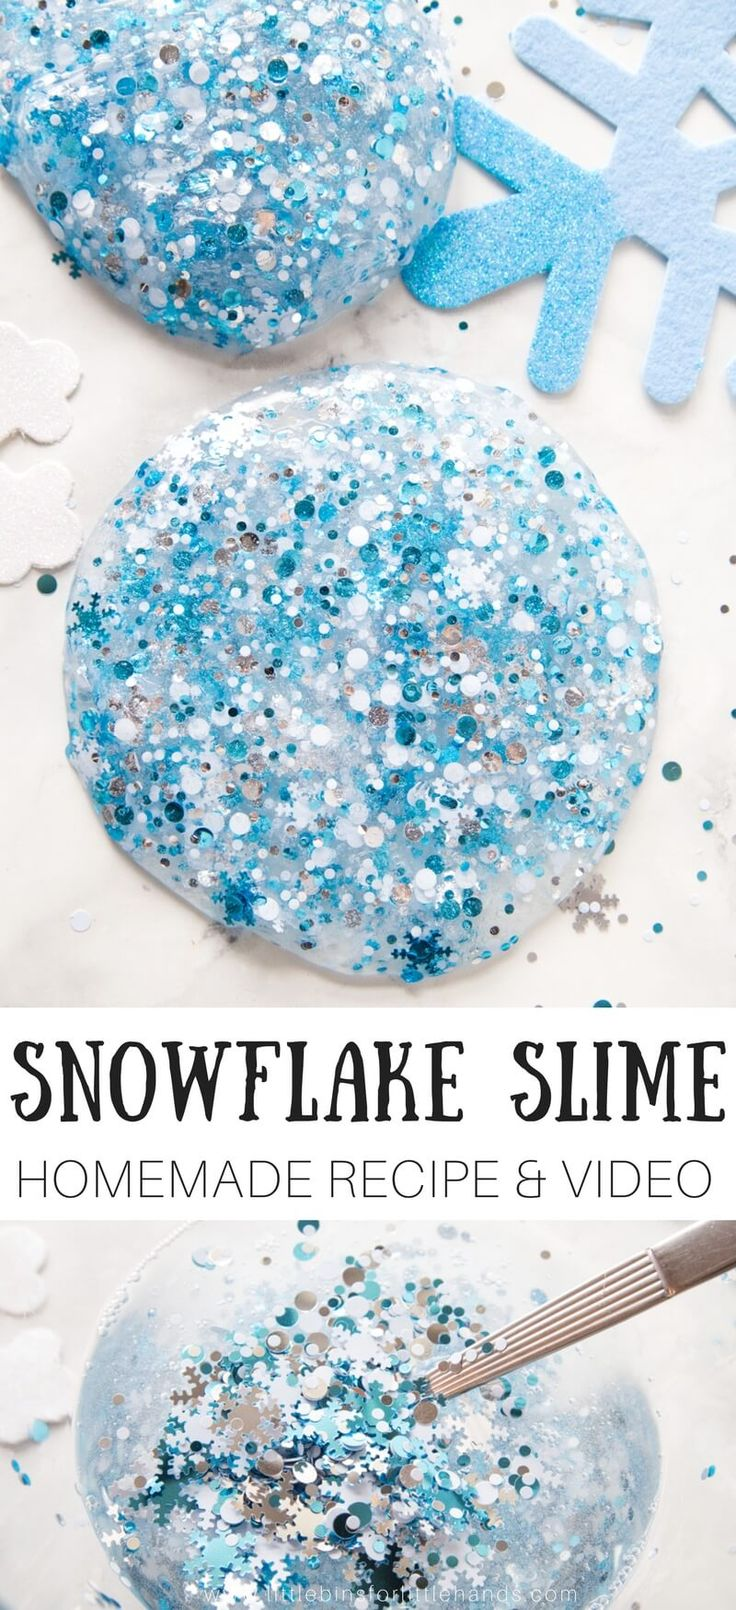 Wonderful winter science with homemade slime! Whether you love or hate snow or live somewhere where there will never be snow, you can still learn how to make homemade snowflake slime recipe with the kids! Making slime is an awesome winter indoor activity.